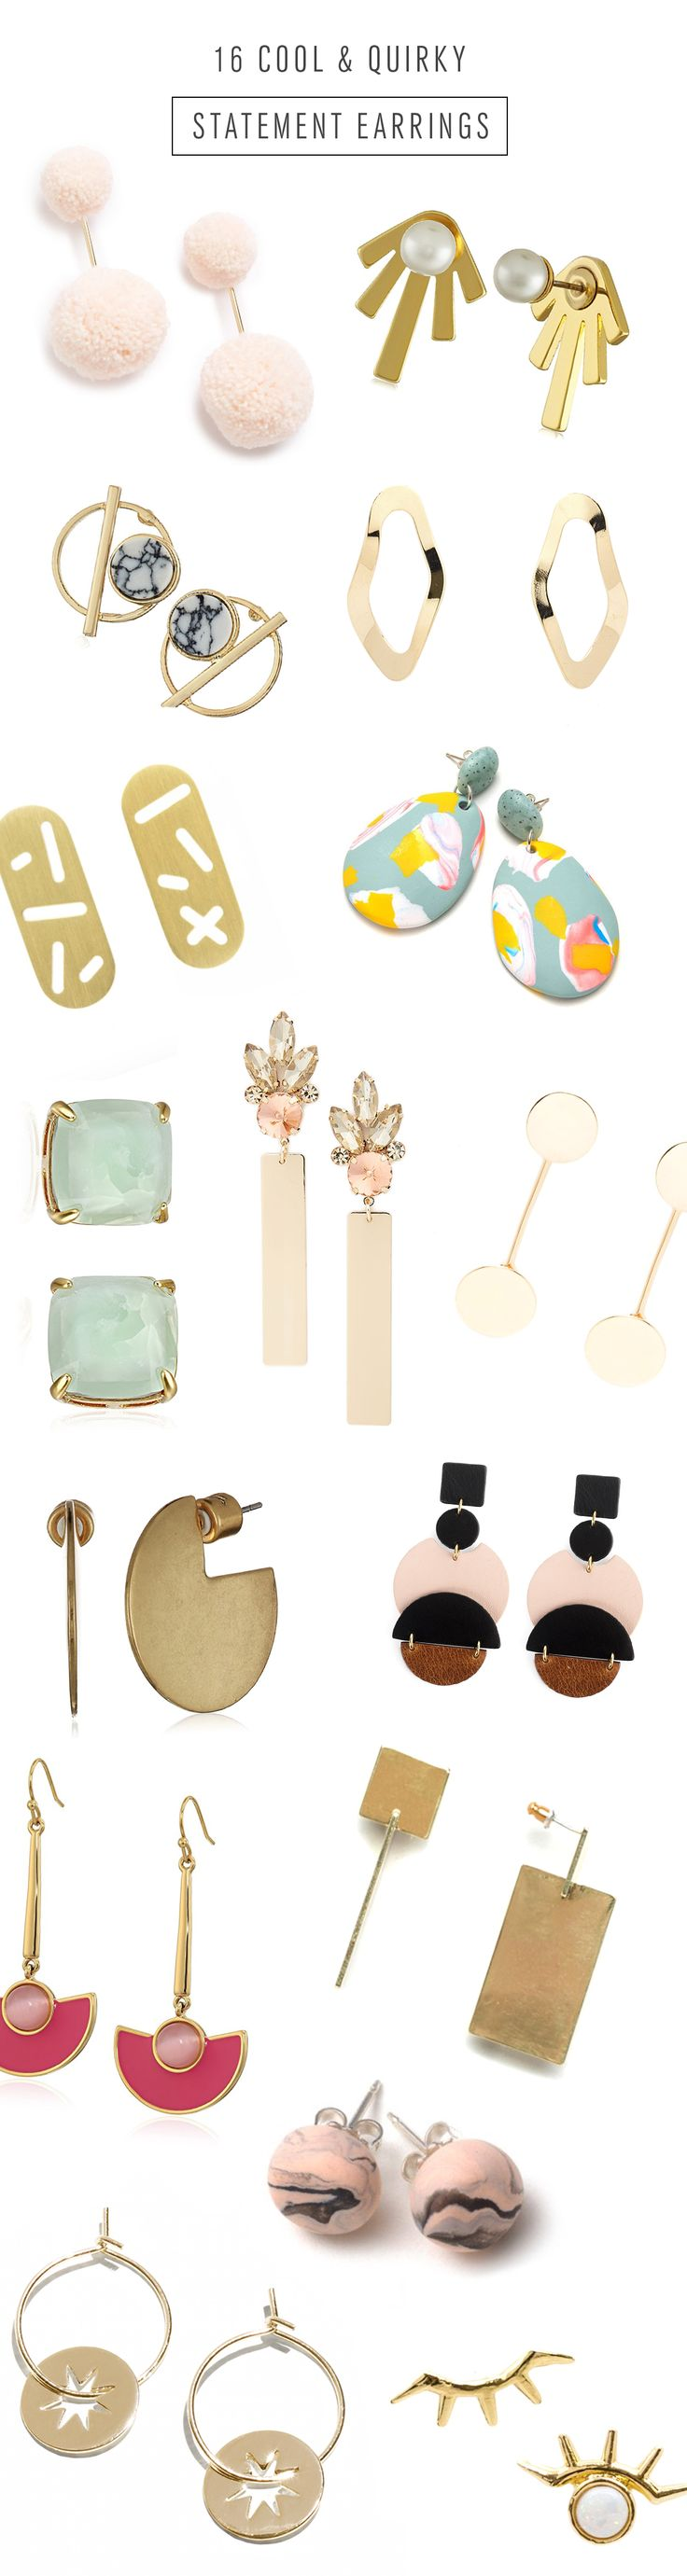 Cool And Quirky Statement Earrings